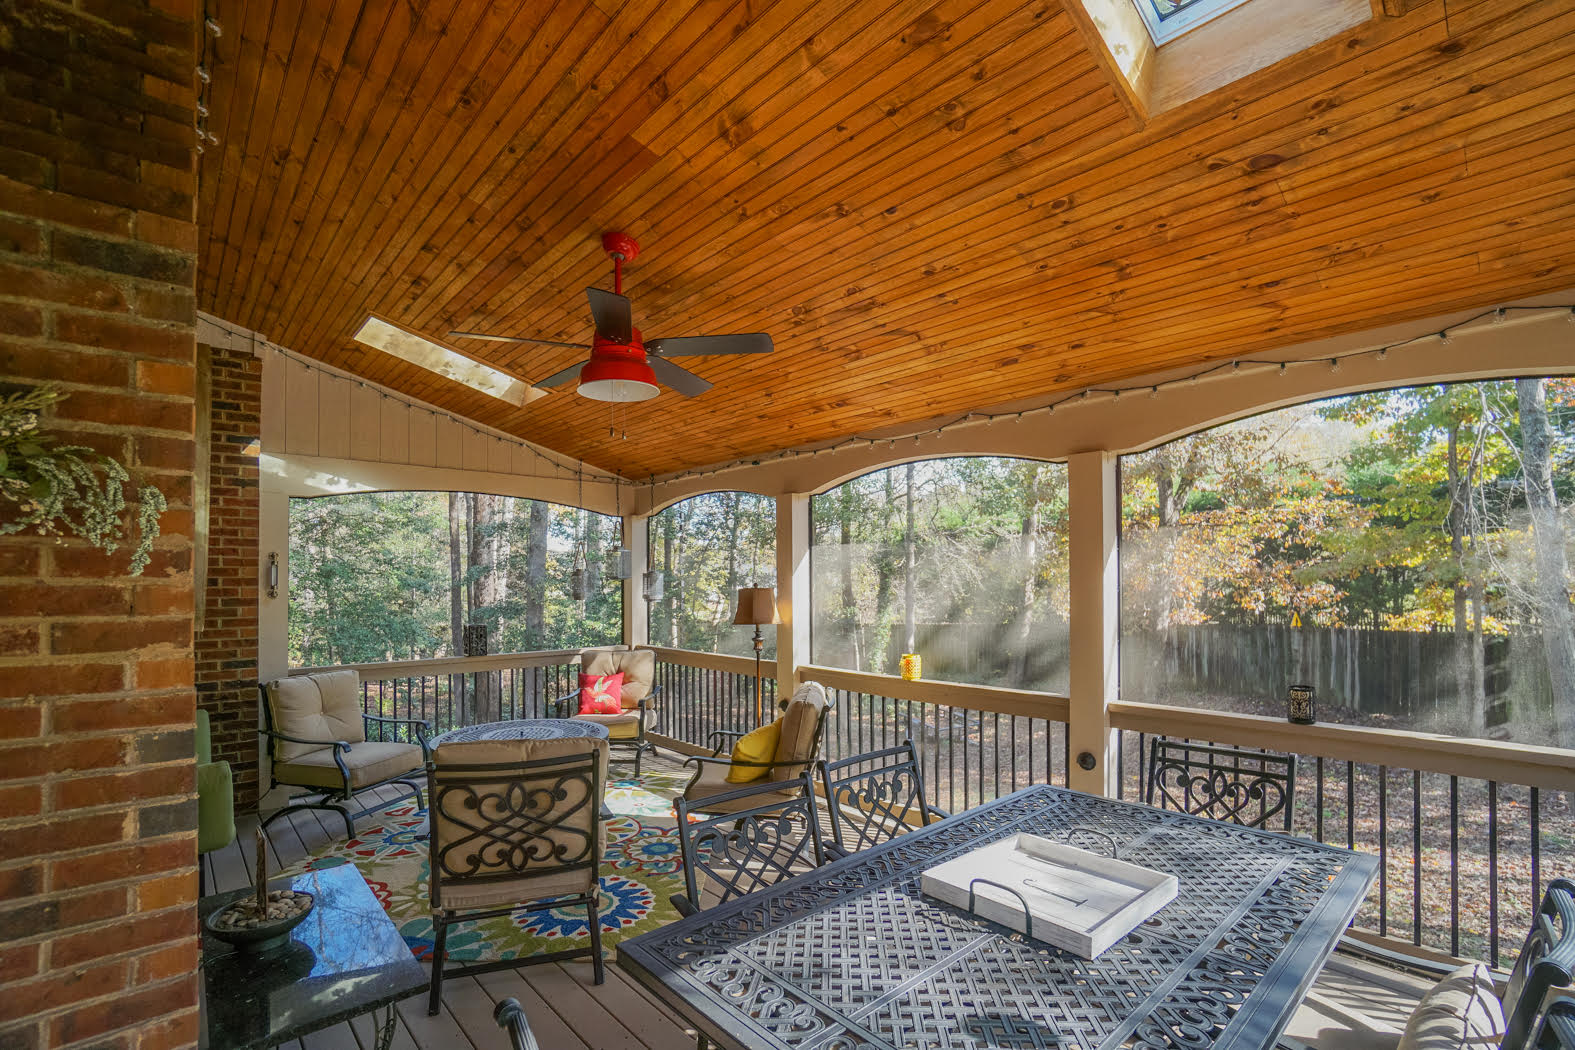 Custom_Screened_Porch_Addition+Deck_Rebuild6